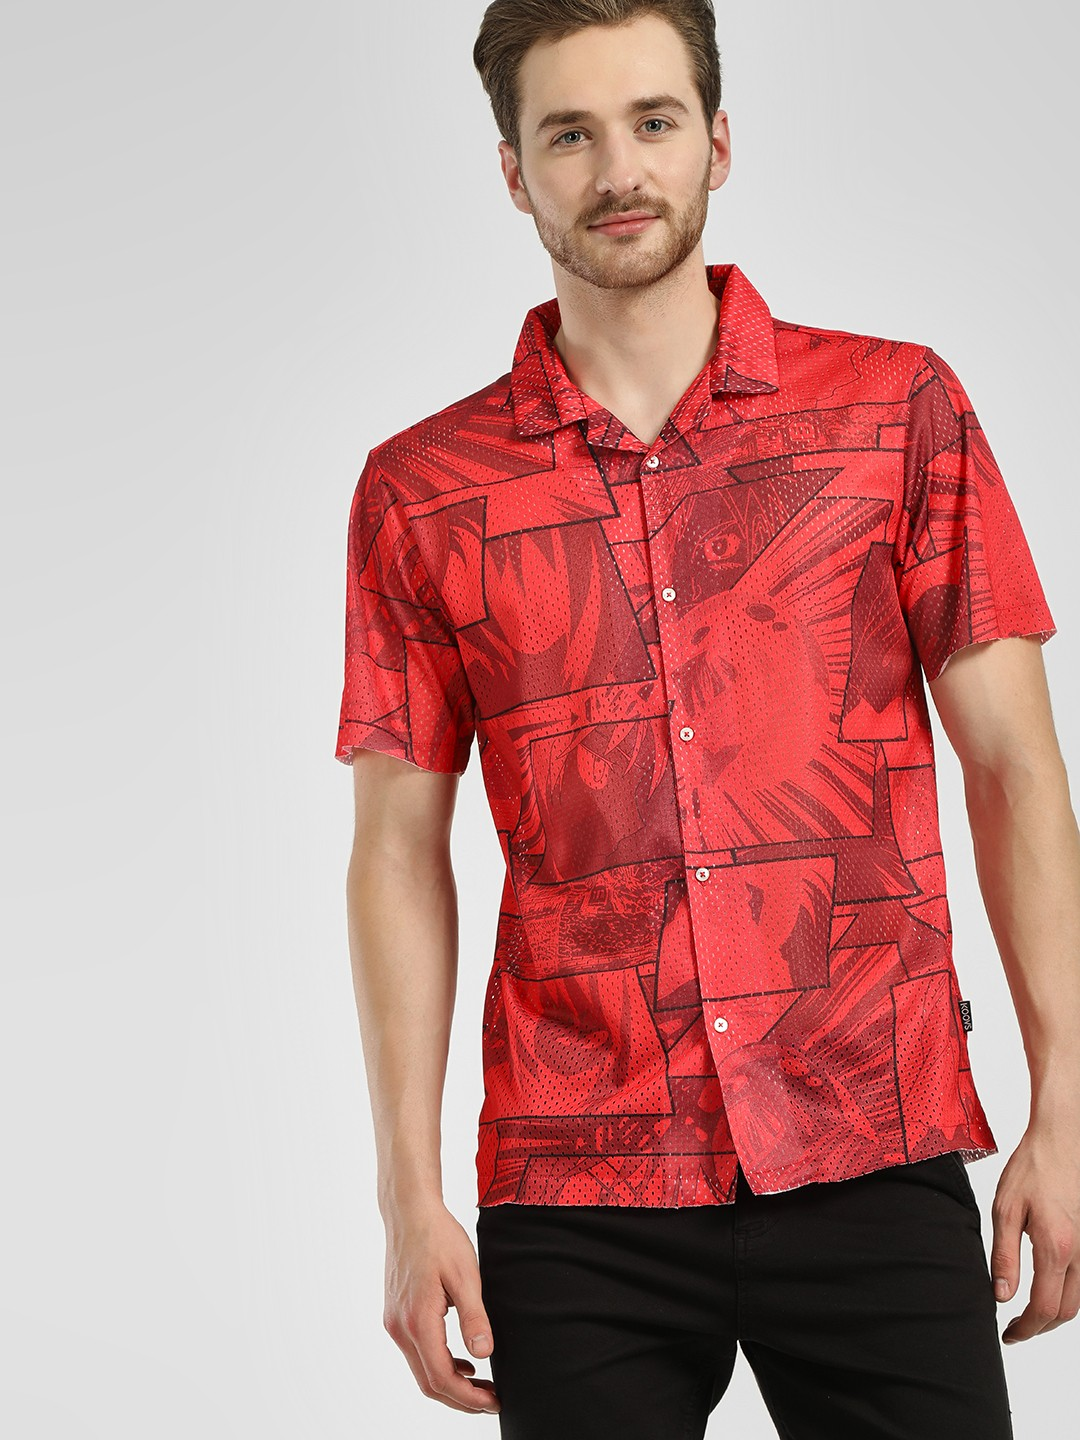 KOOVS Red Manga Art Print Mesh Shirt 1